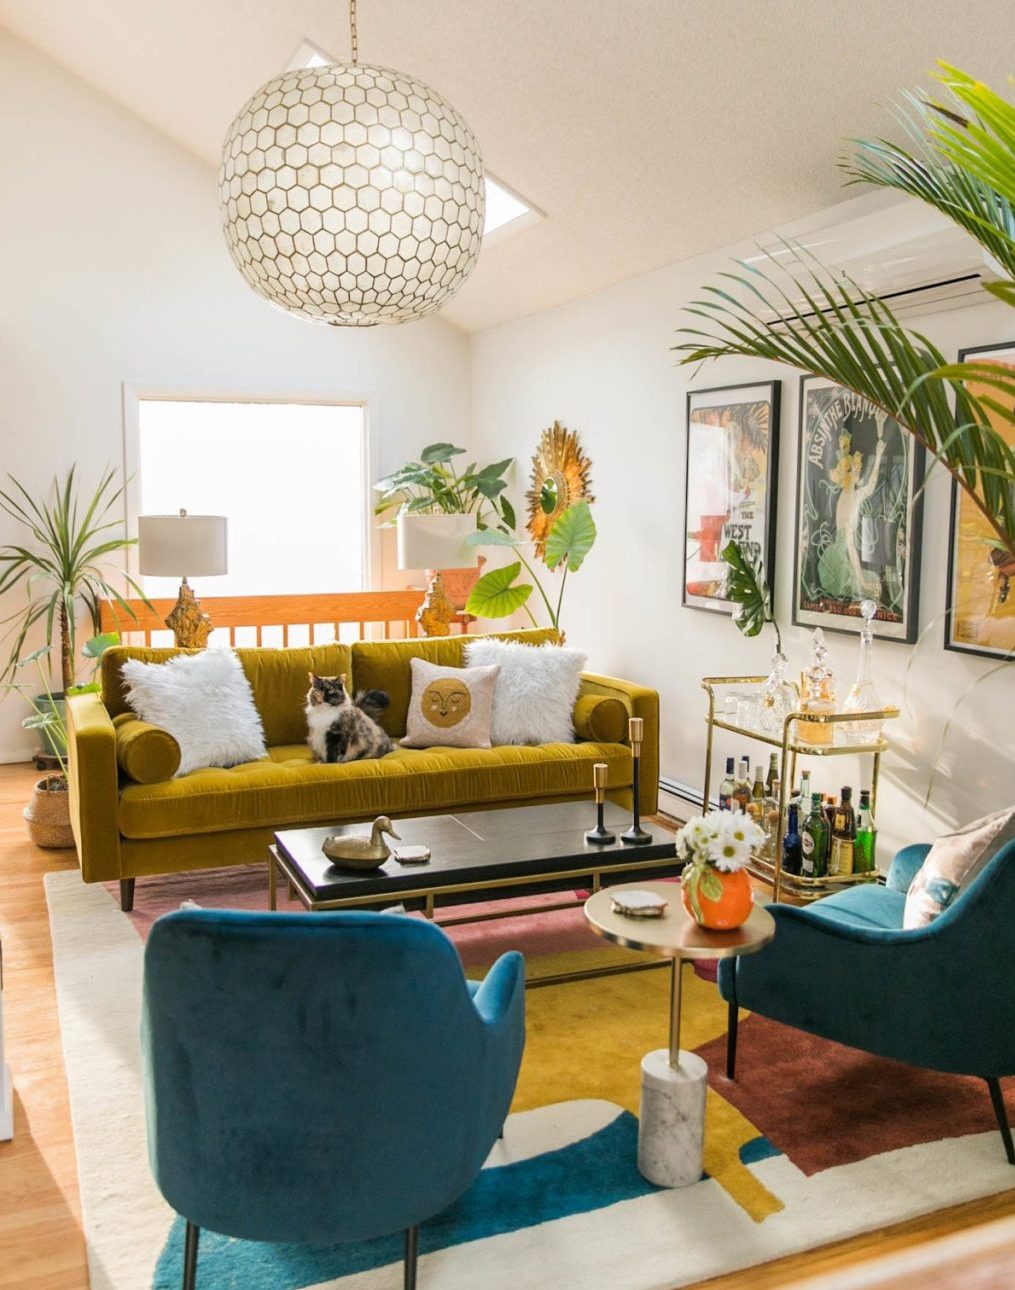 retro-style brightly colored living space resembling 30s design